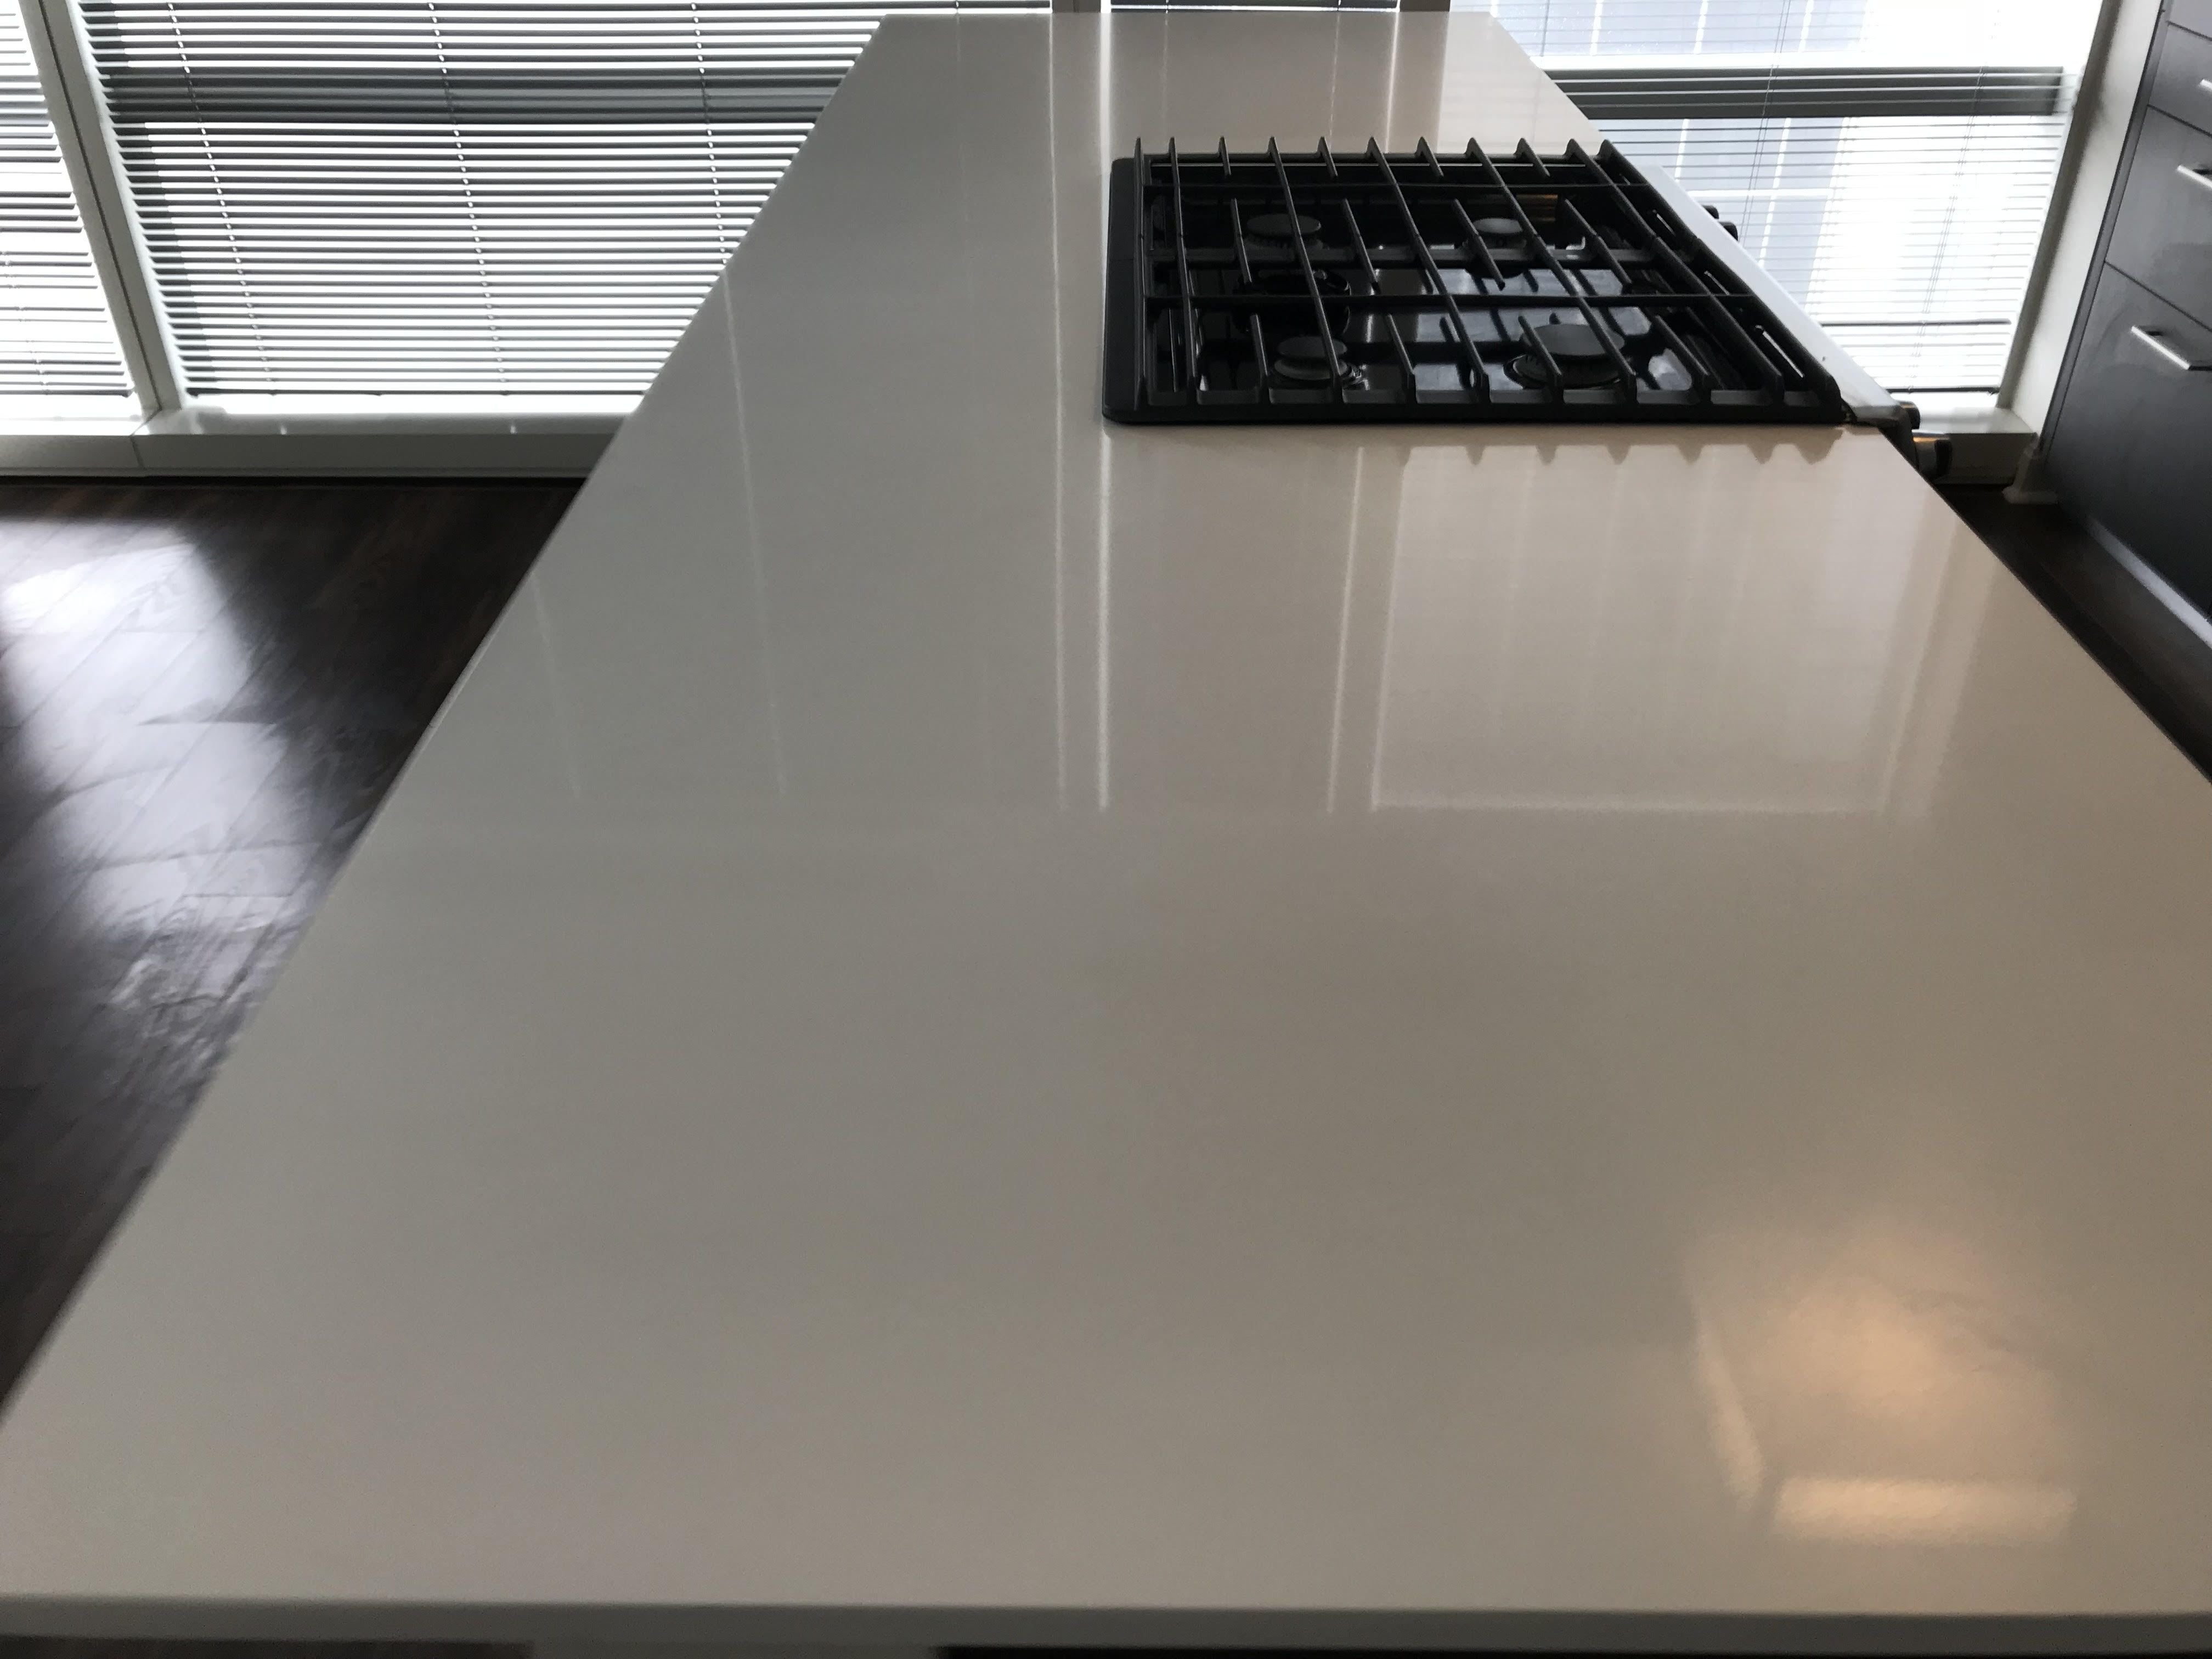 Quartz Countertop Cleaning Polishing And Chip Repair